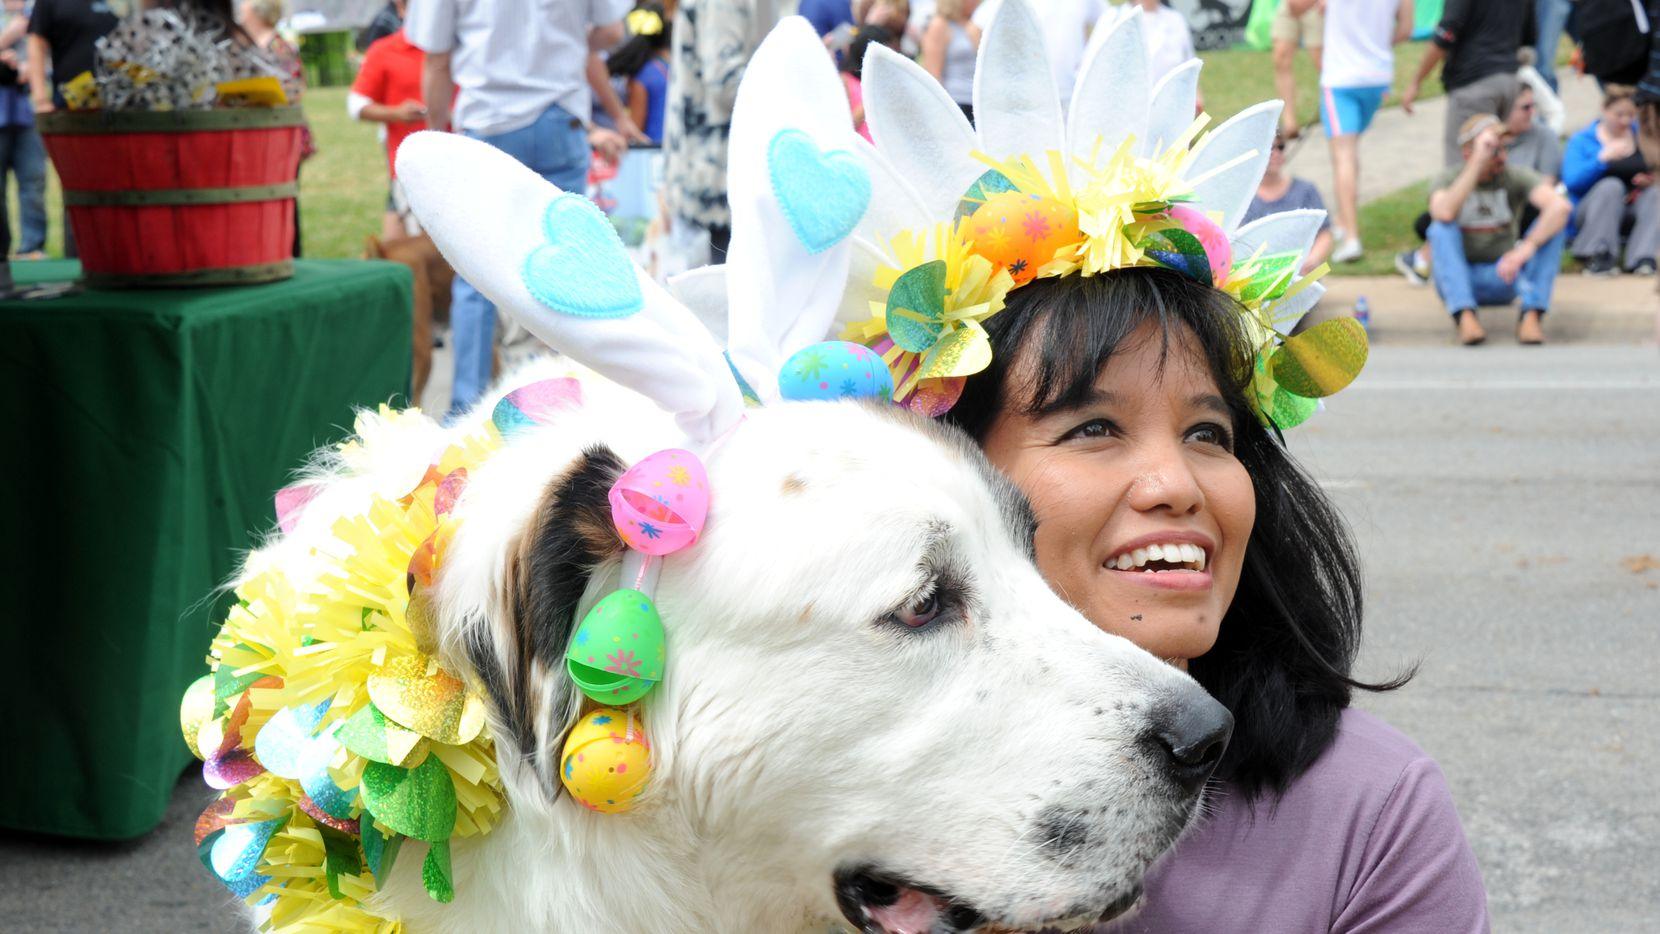 Ella and her furry  Pyrenees-St. Bernard mix dog Boo Boo relax after walking in the costume parade at Easter in the Park  in 2013.